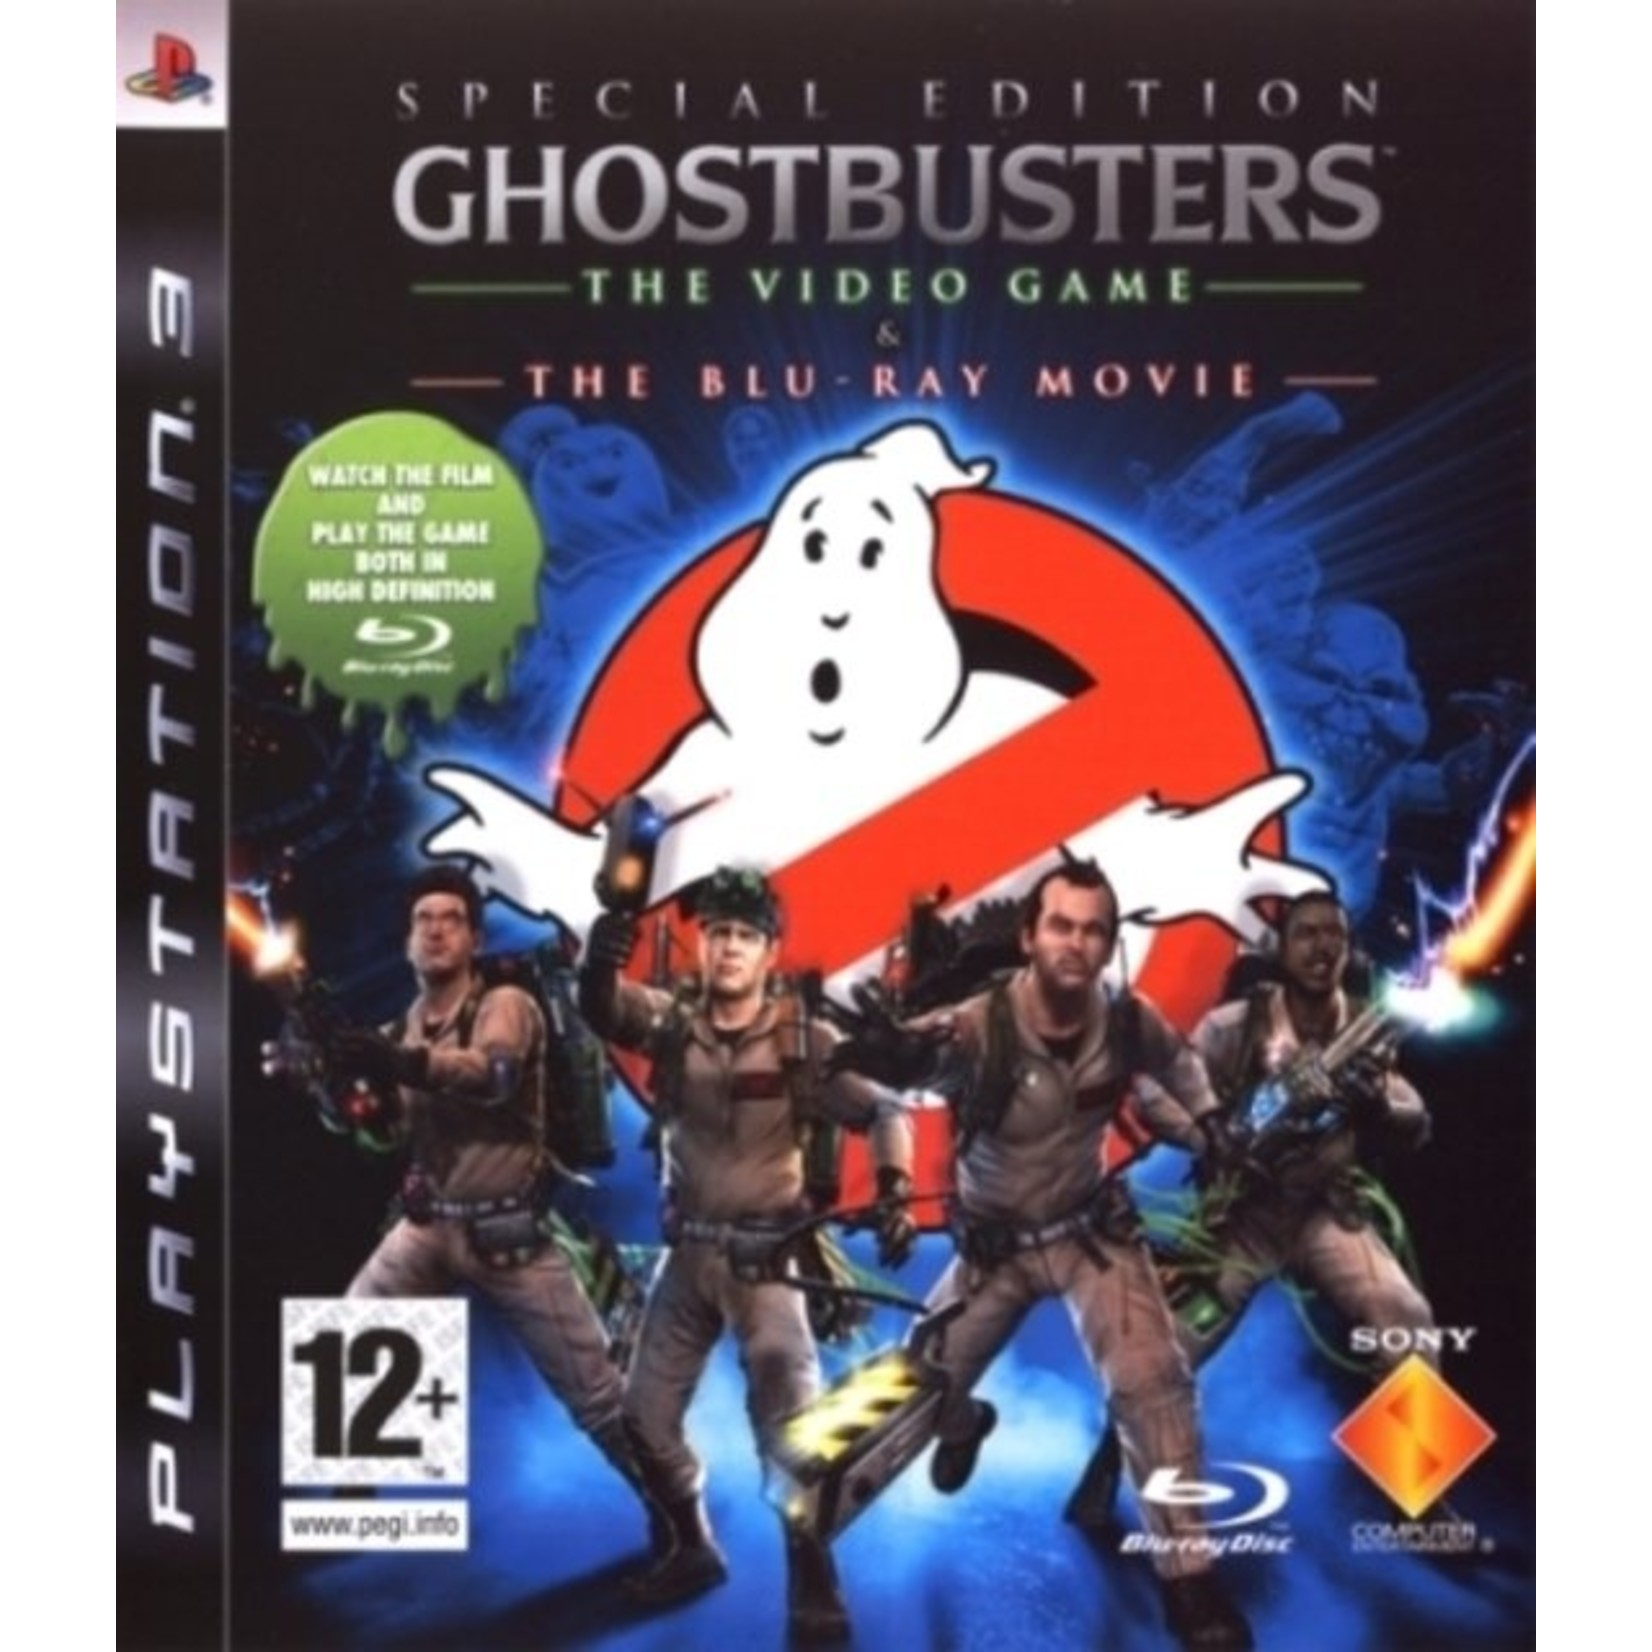 Ghostbusters - Special Edition